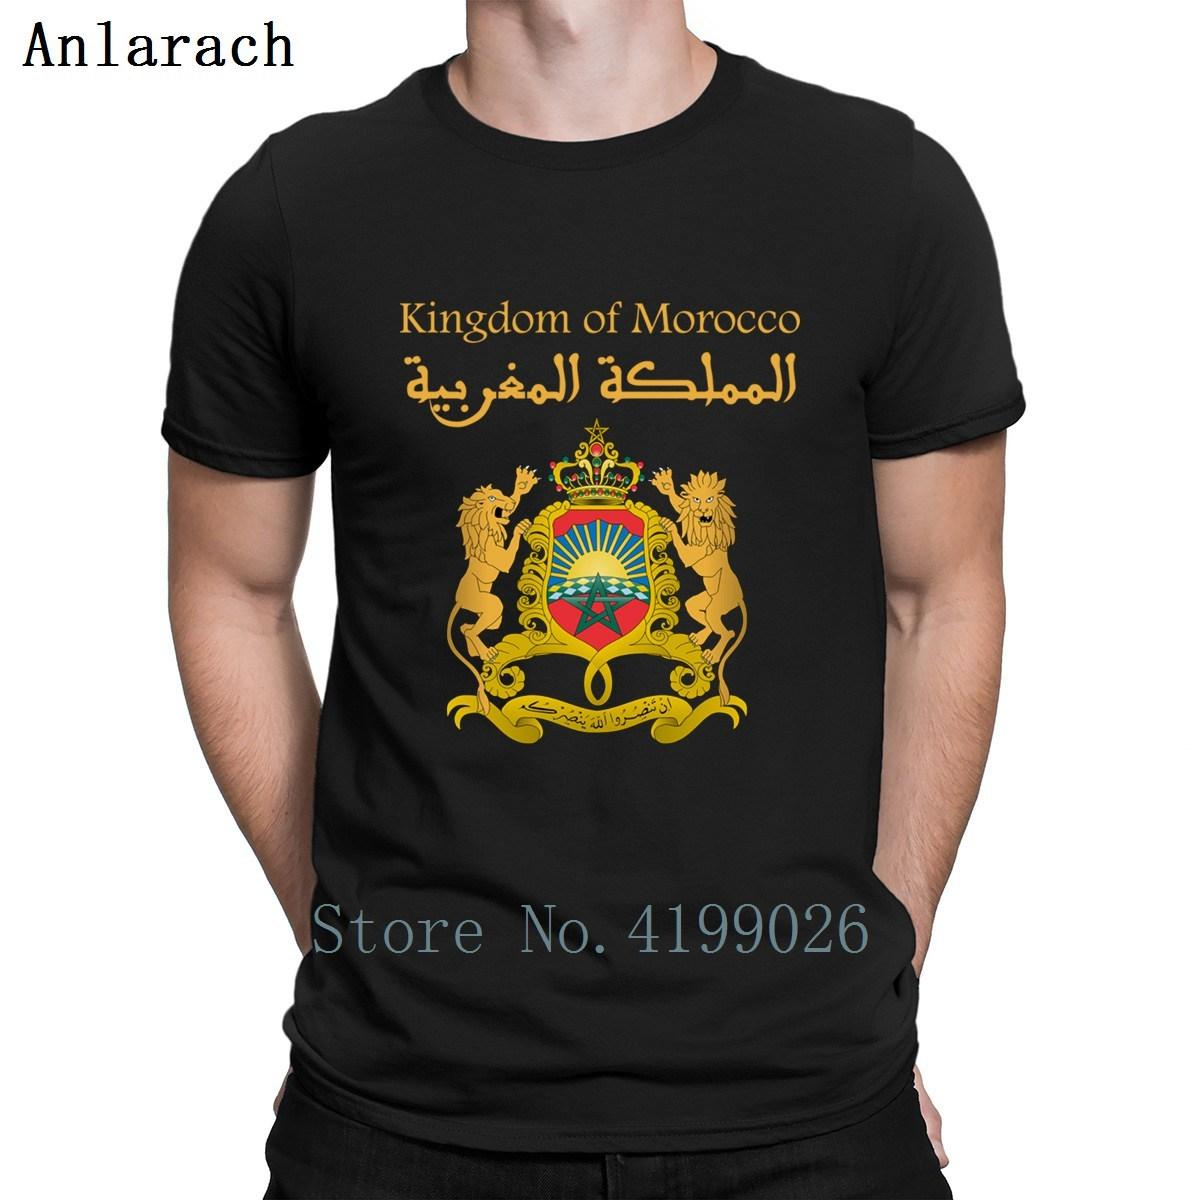 Kingdom Of Morocco Royaume Du Maroc T Shirt O-Neck Slim Spring Autumn Pictures Cotton Cute Building Customize Shirt